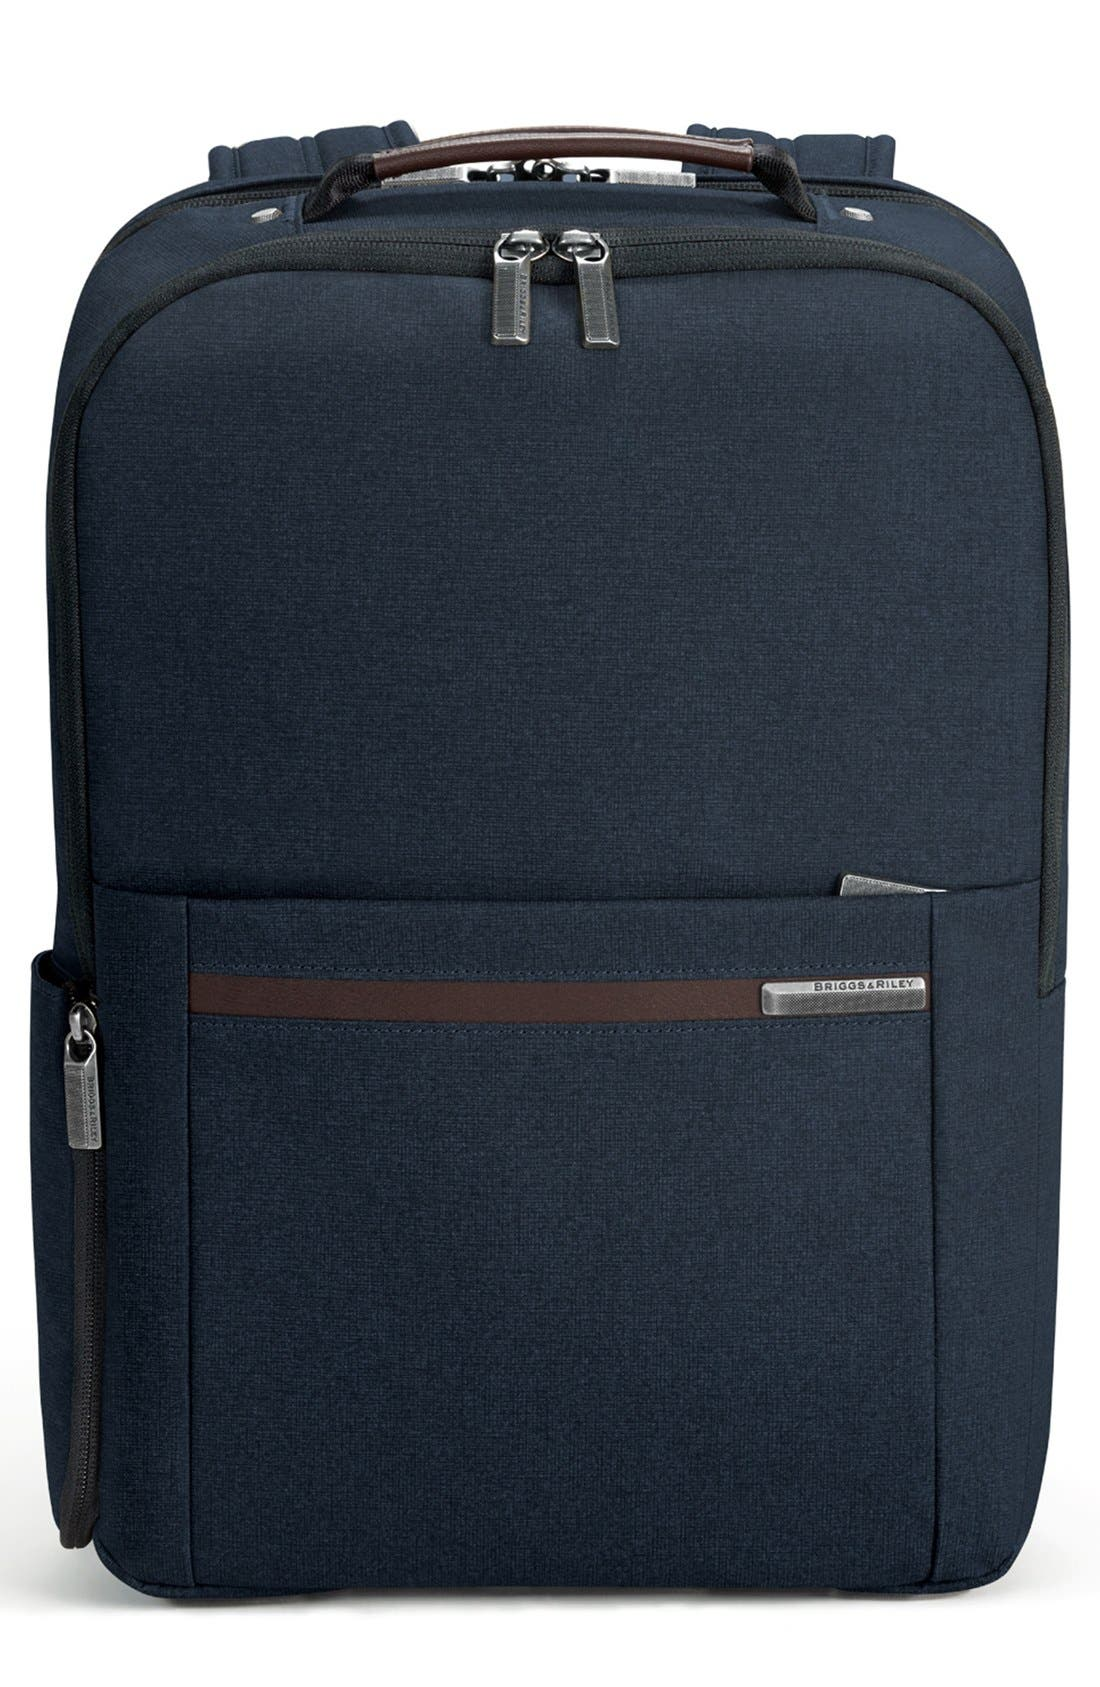 BRIGGS & RILEY 'Kinzie Street' Medium Backpack